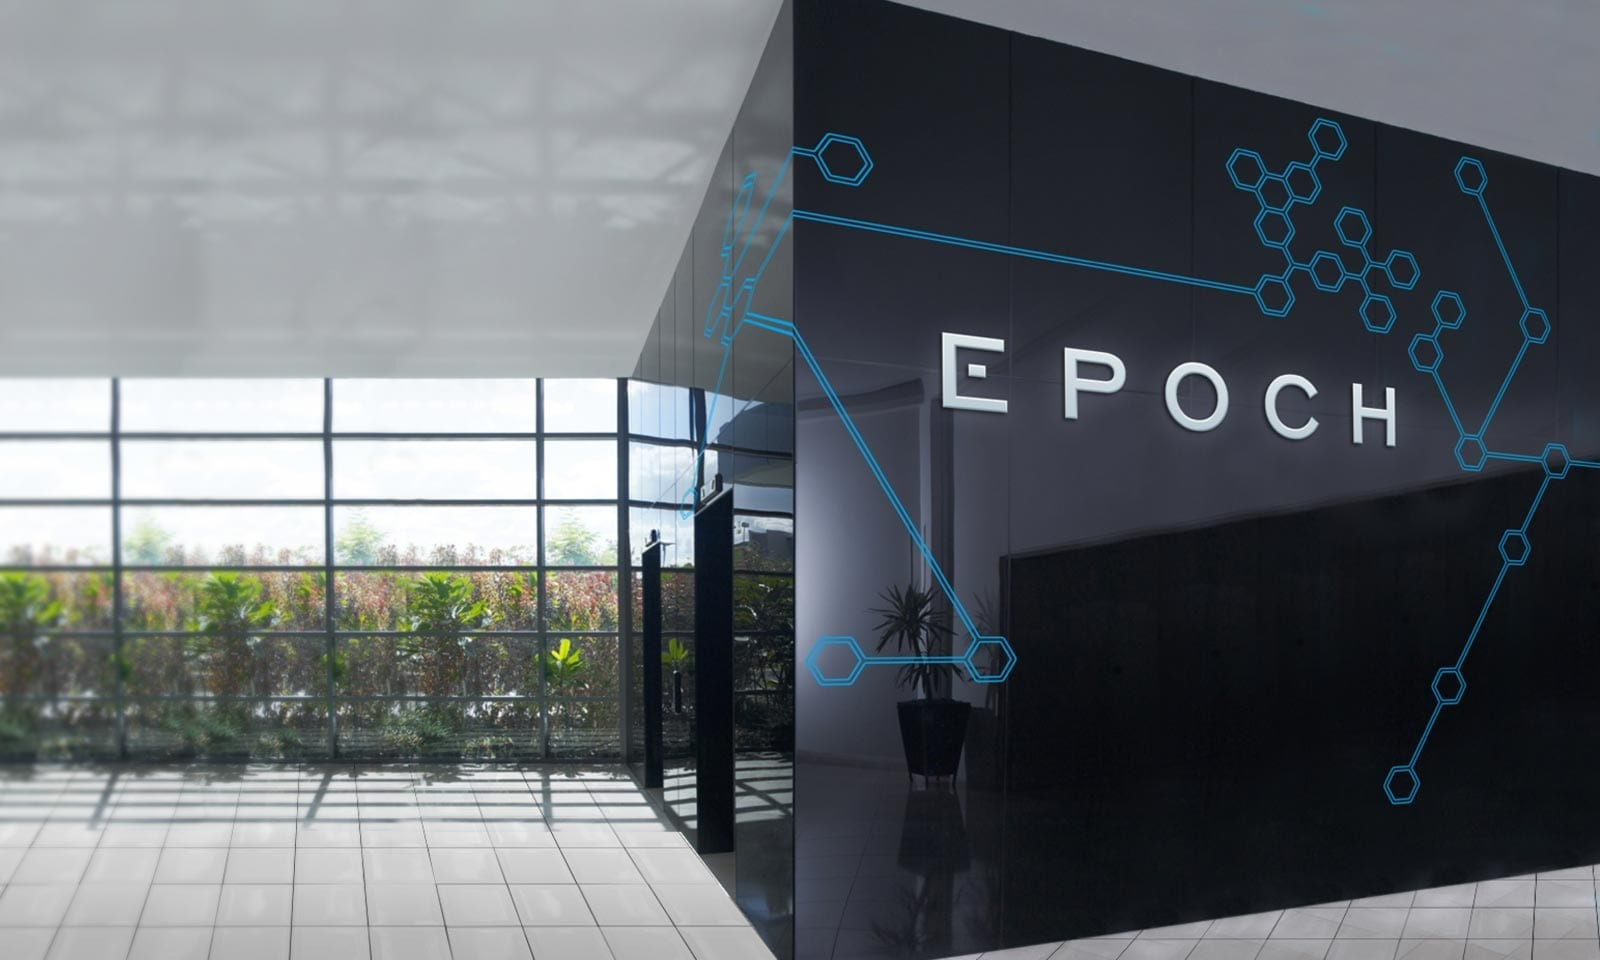 Welcome to Epoch, Reposition a brand sydney